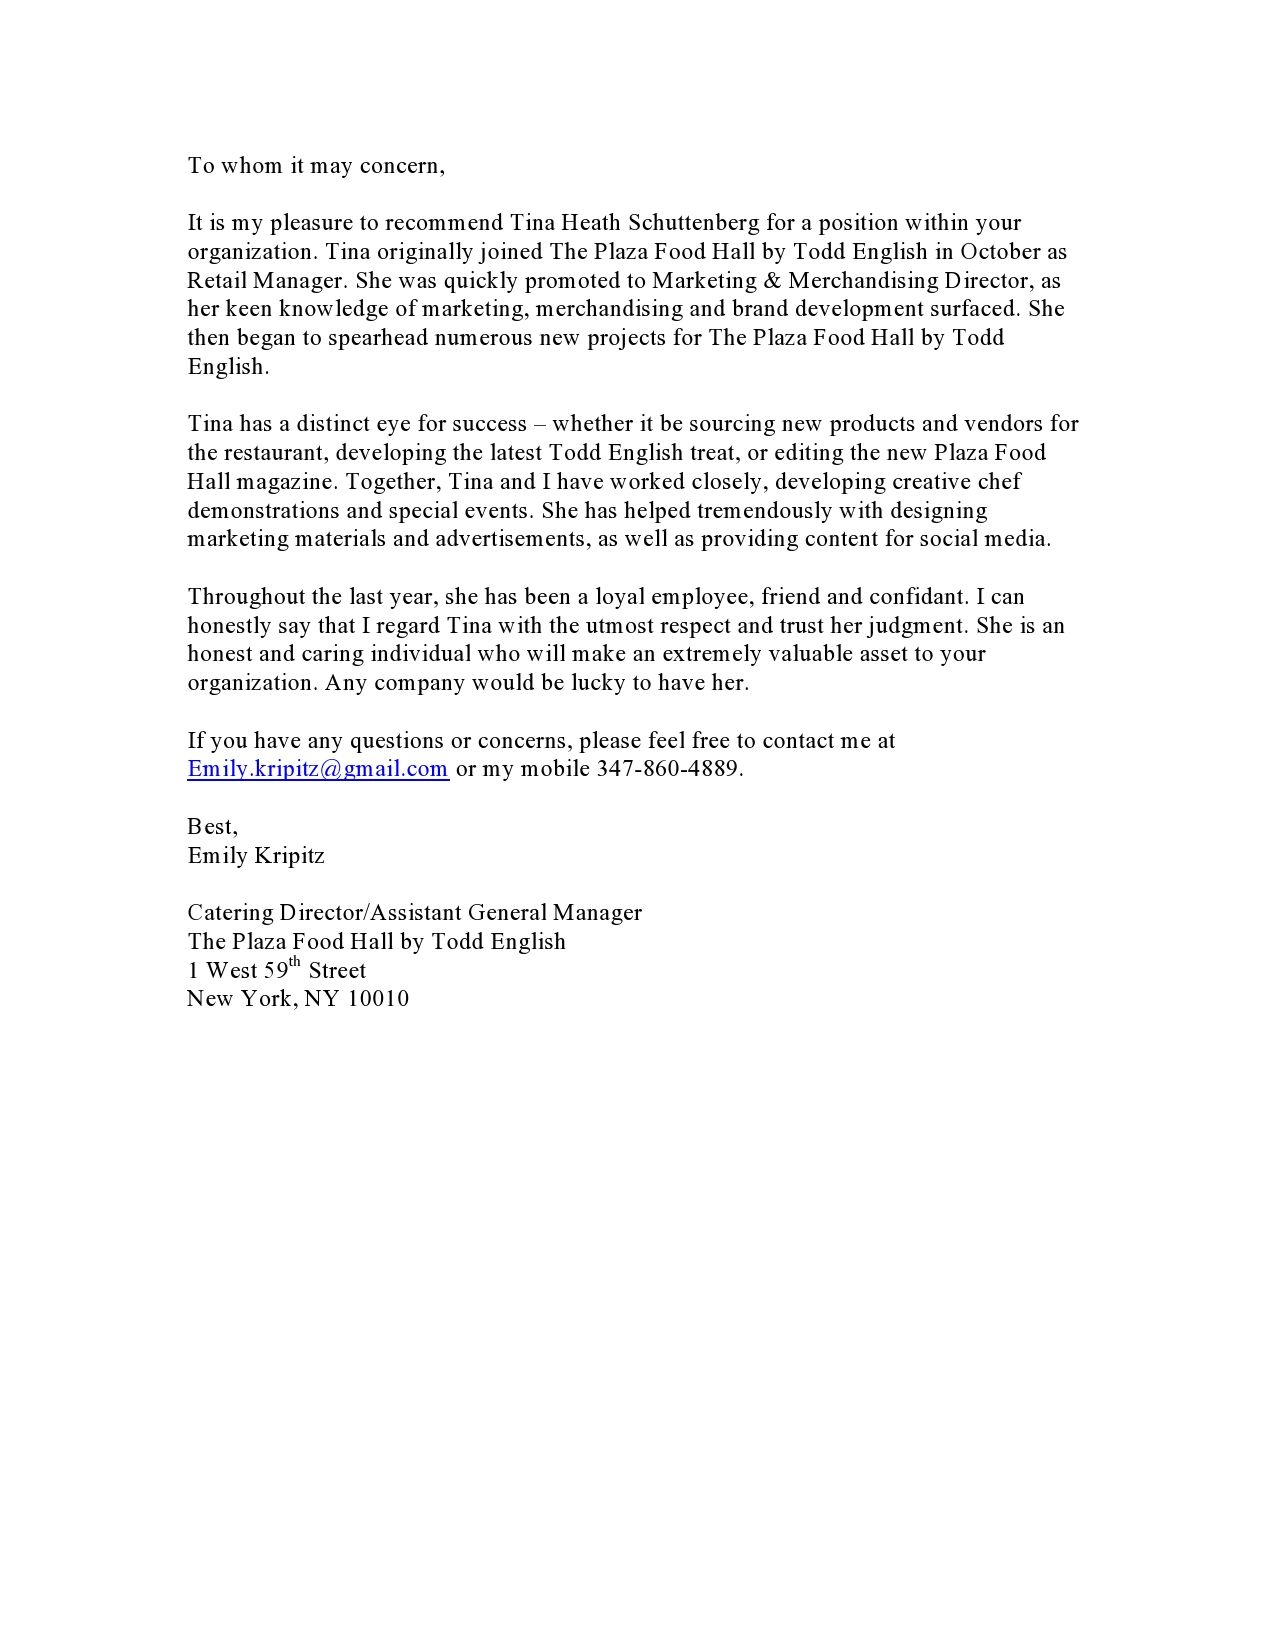 Reference letter from emily former catering director at todd english reference letter from emily former catering director at todd english food hall expocarfo